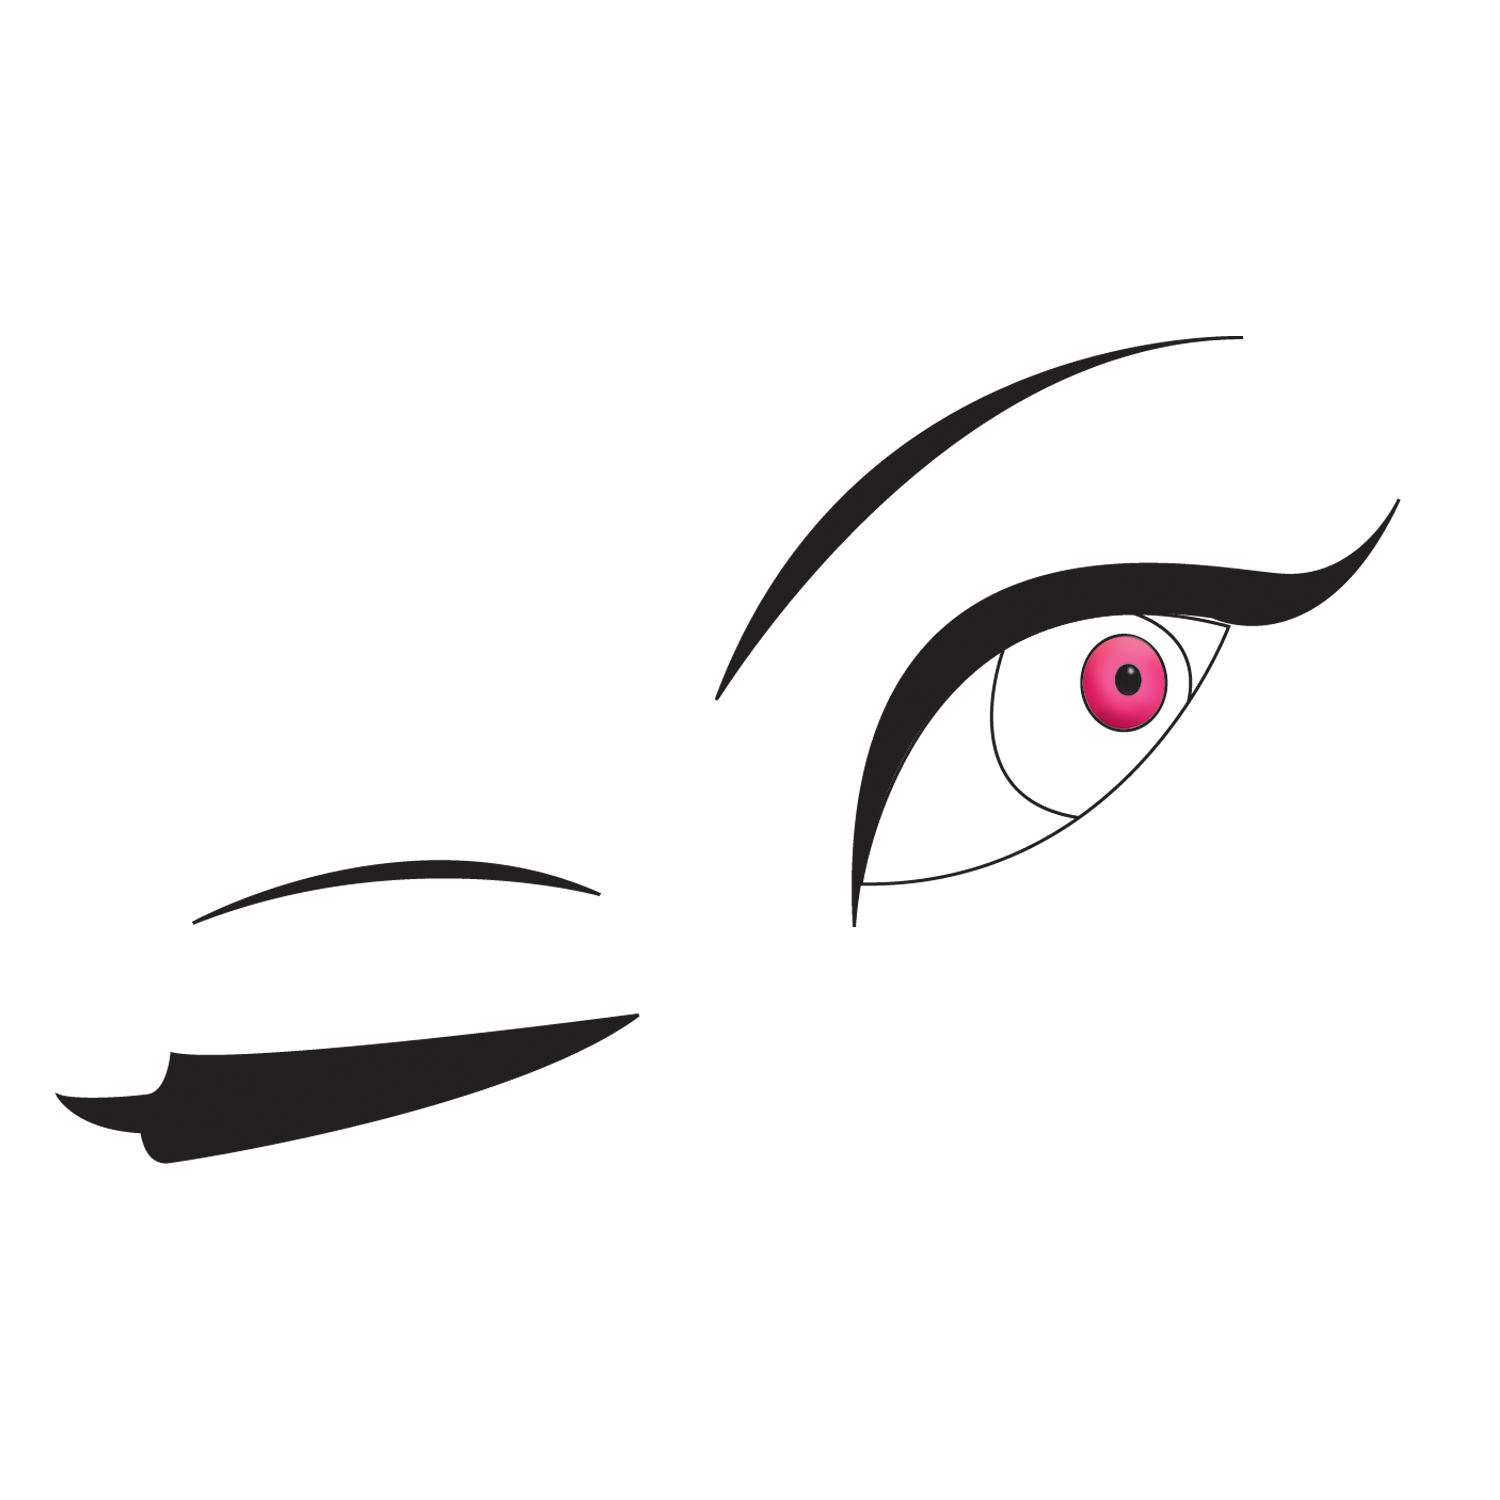 Free clipart winking eye graphic freeuse library Free Winking Eye Cliparts, Download Free Clip Art, Free Clip Art on ... graphic freeuse library